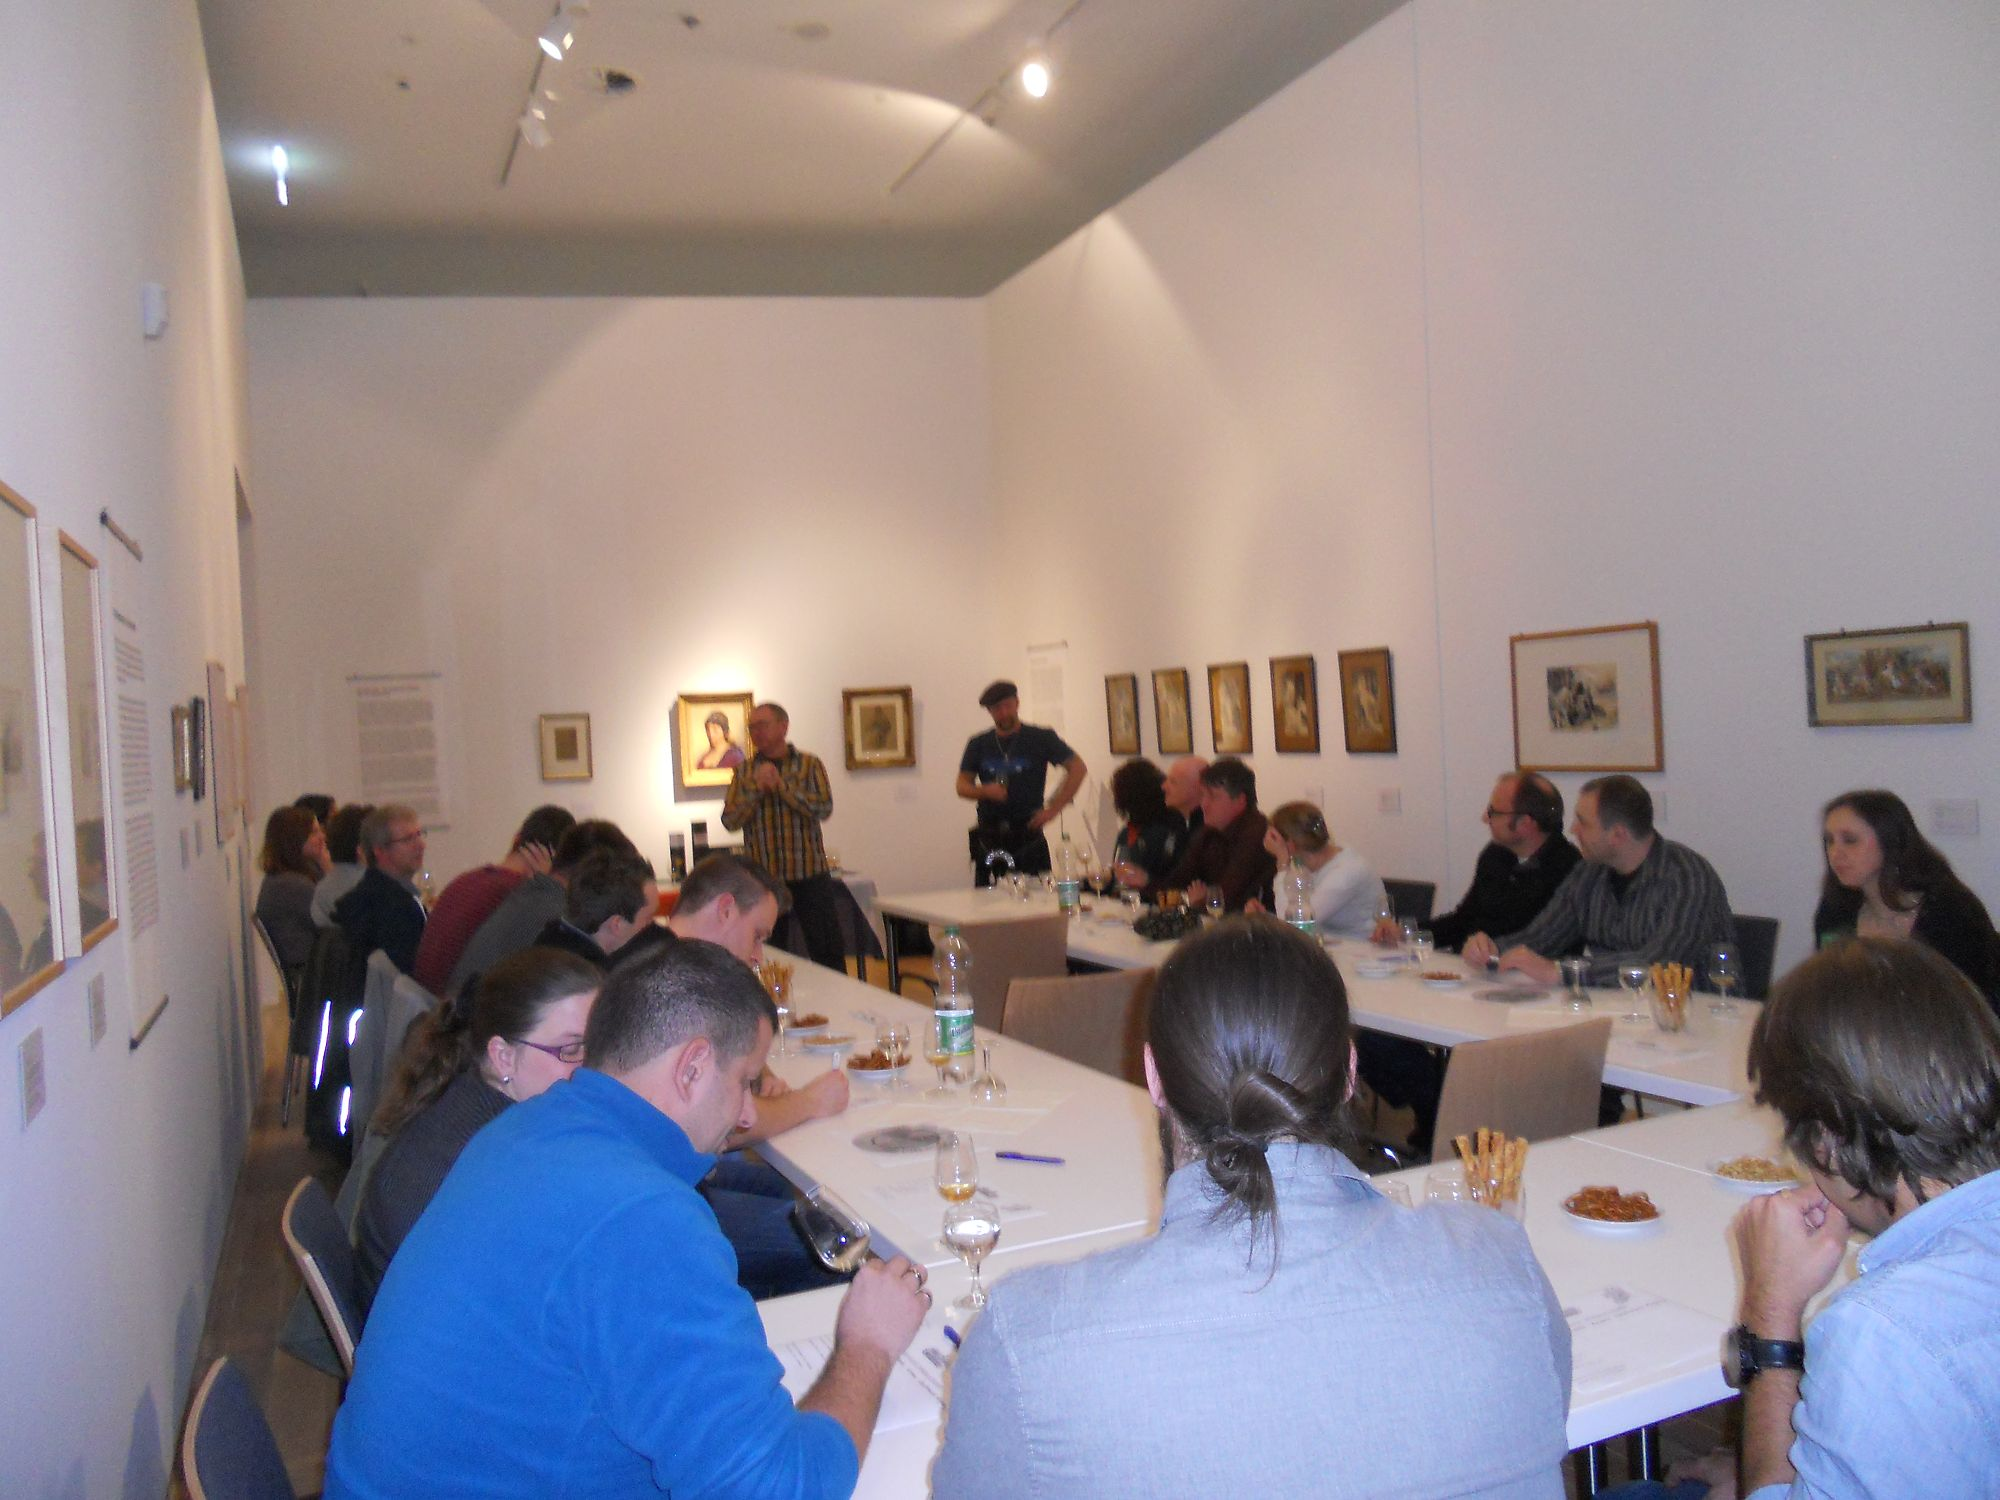 http://pipers-corner.de/media/events/Whisk(e)y-Tasting im Mittelrheinmuseum/k-DSCN3126.JPG